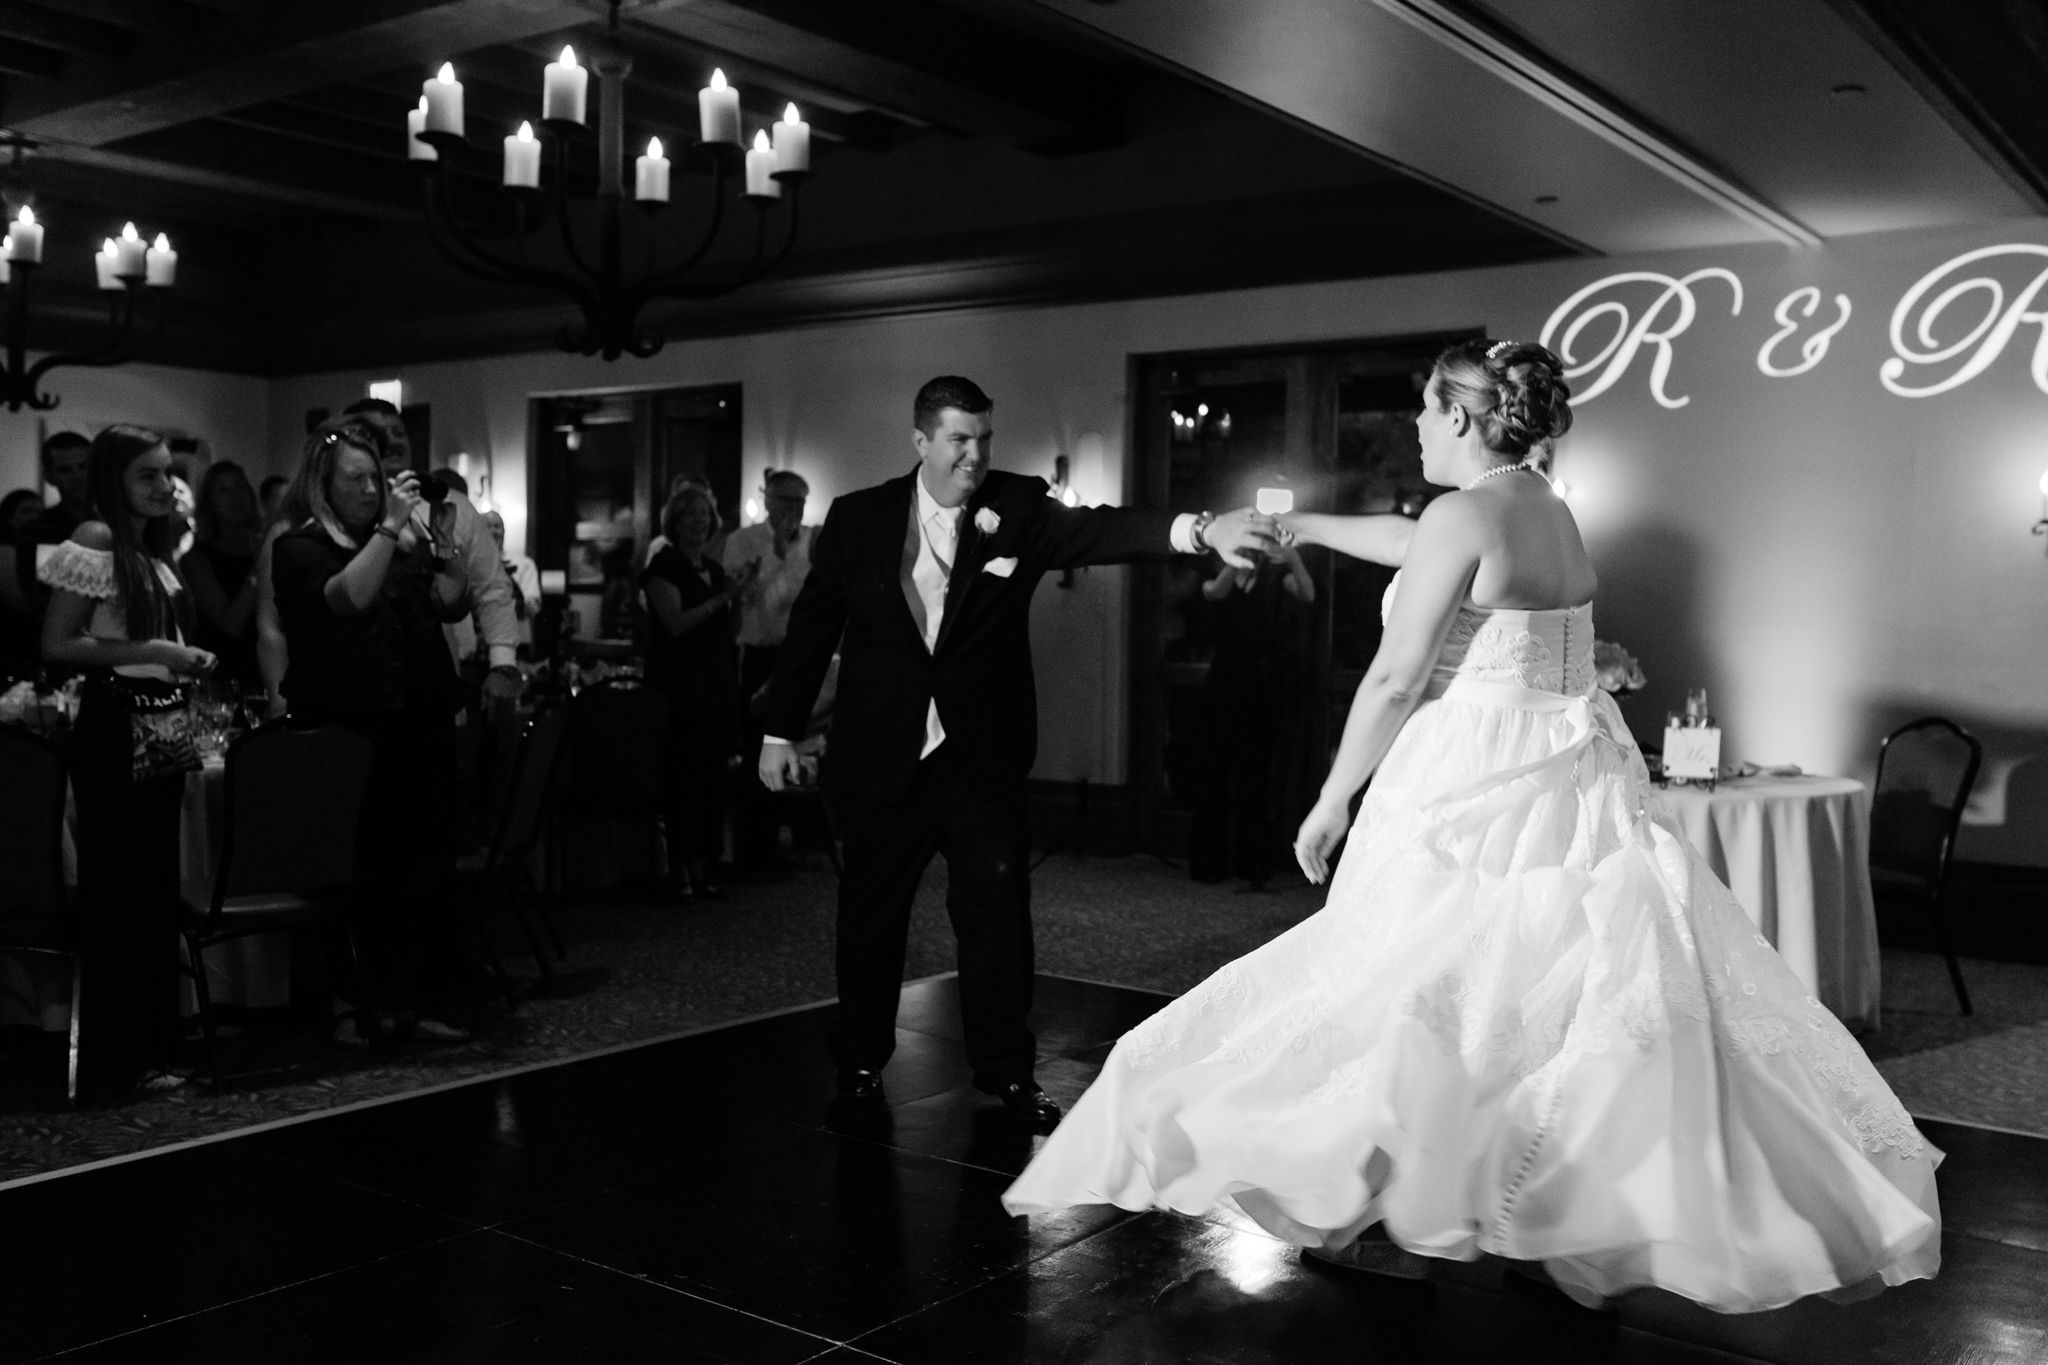 bride & groom first dance at Sassi Wedding venue Scottsdale Arizona by Alyssa Campbell Photography